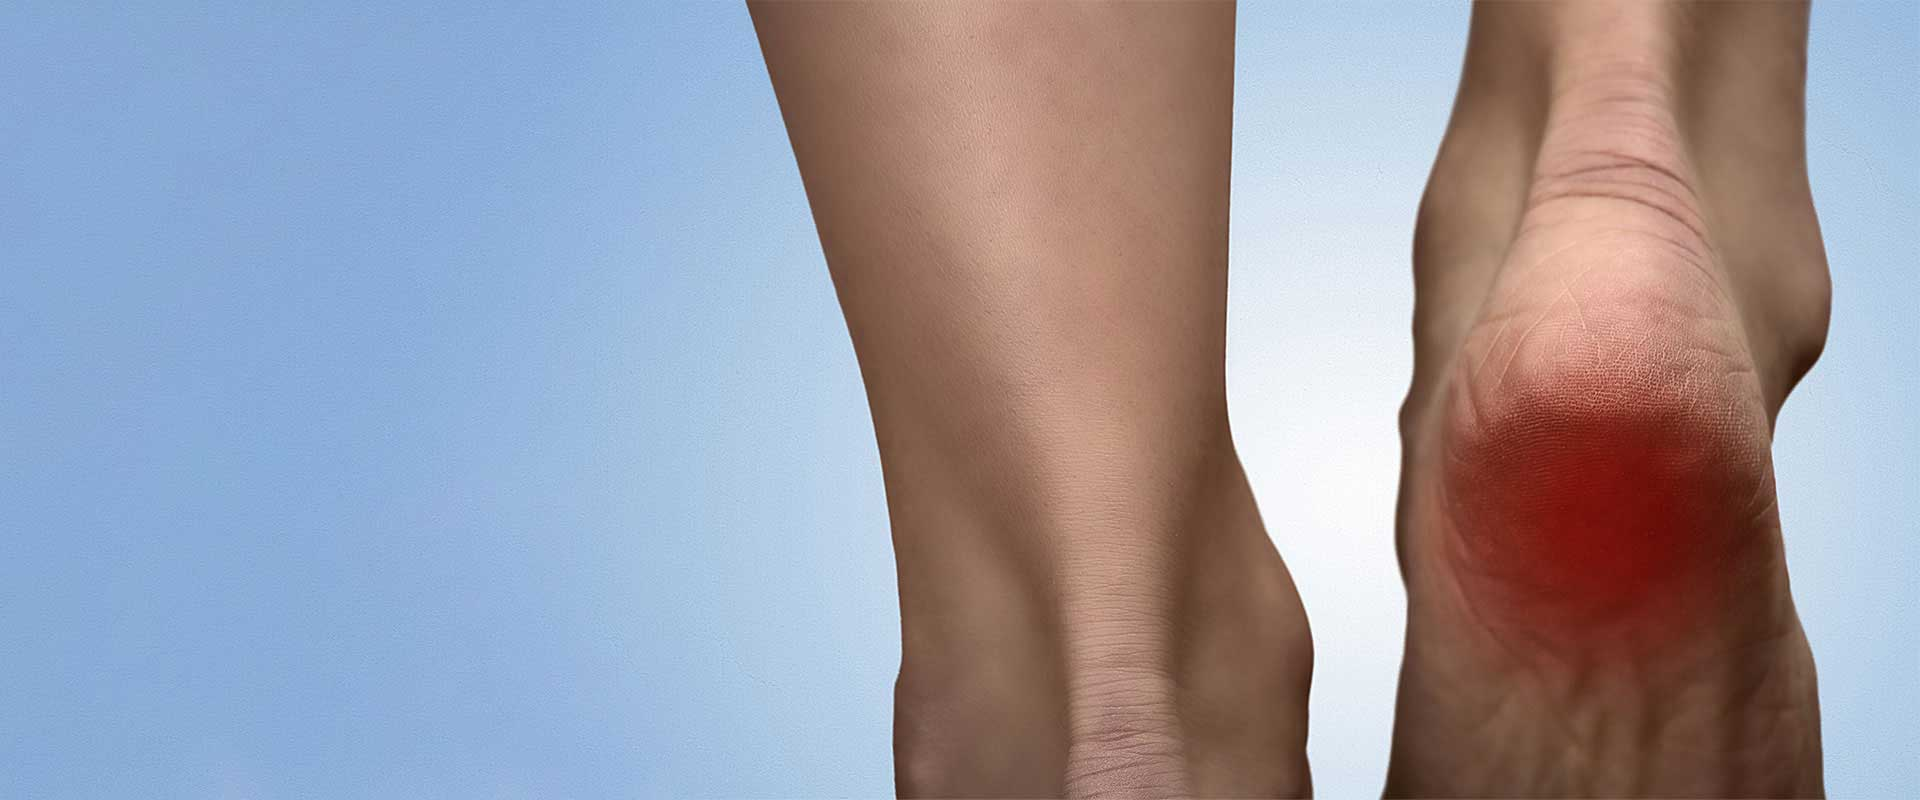 The Foot and Ankle Center heel pain